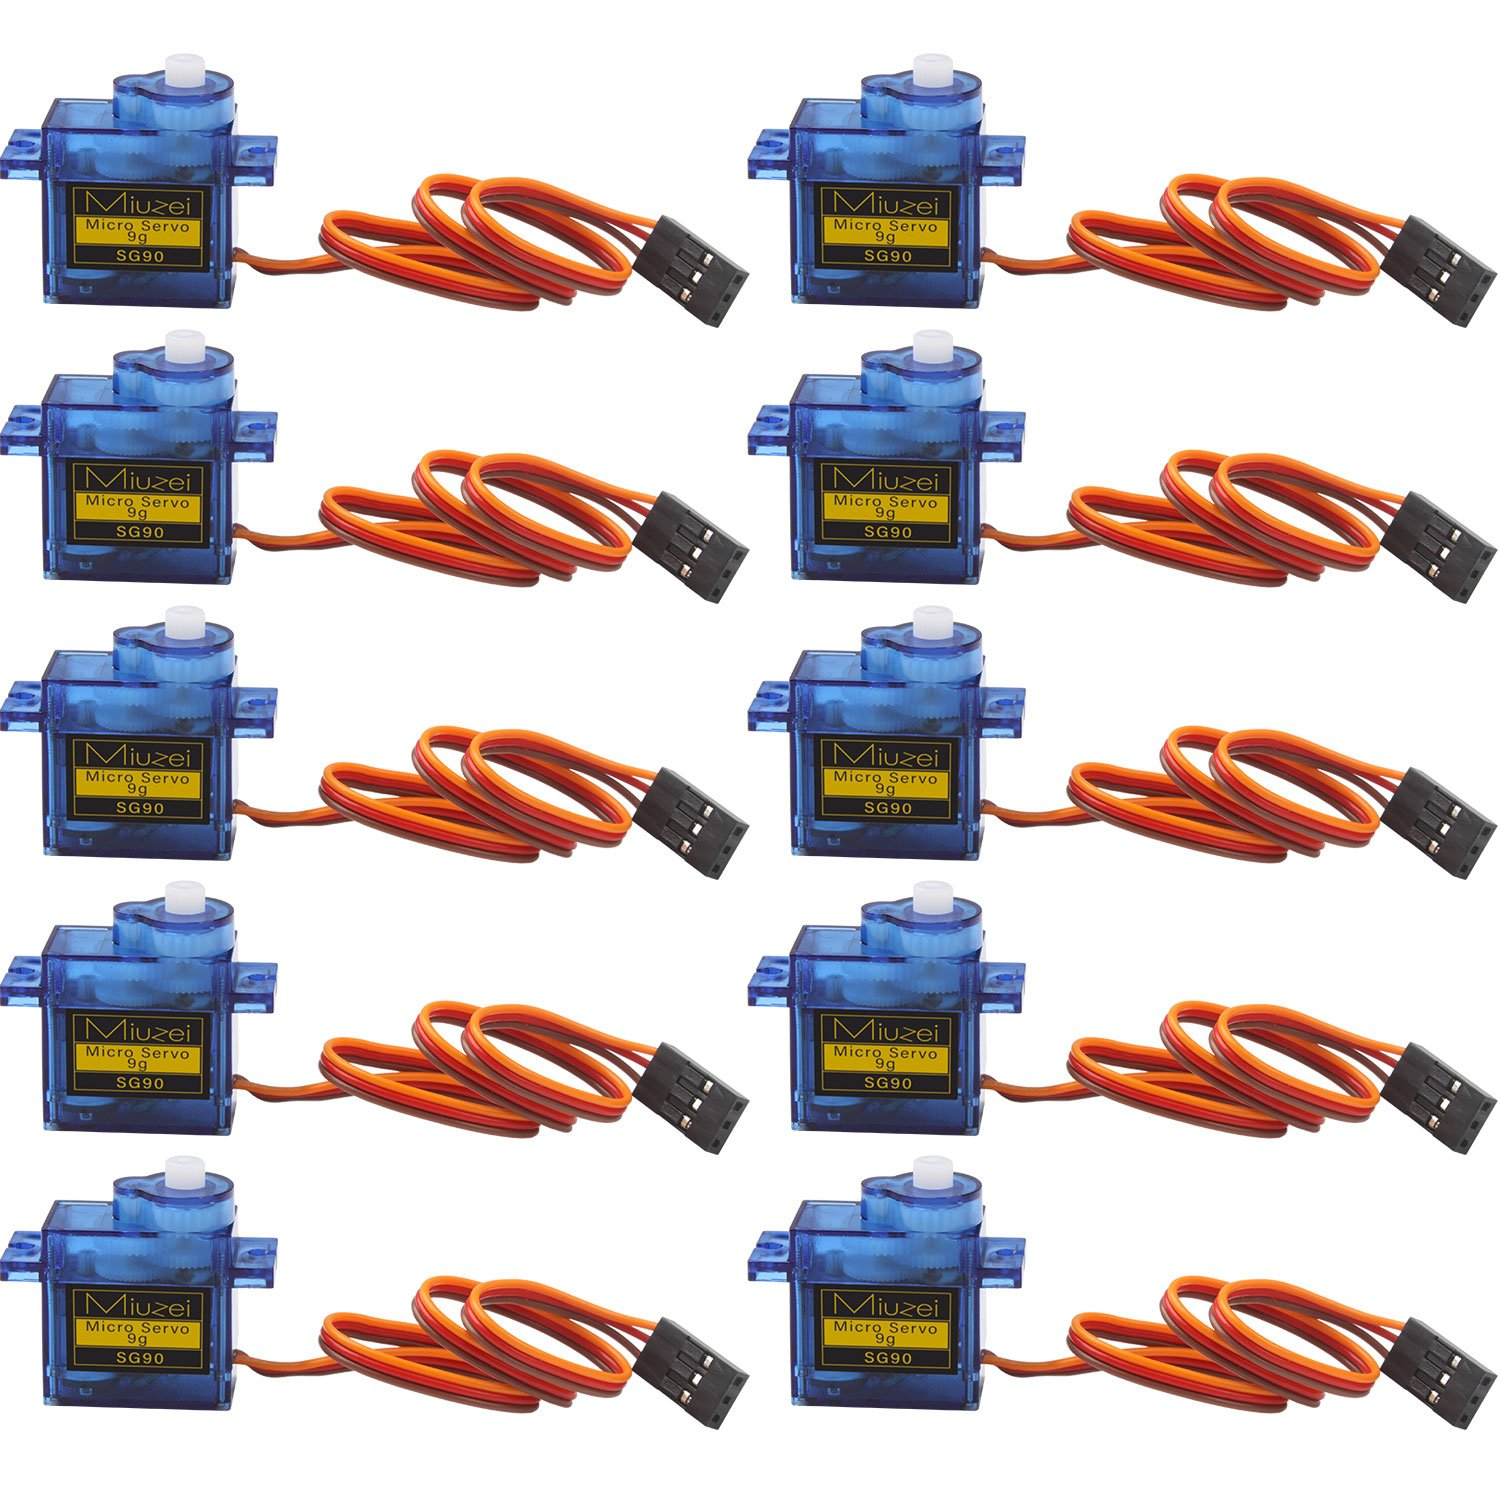 10 pcs SG90 9G Micro Servo Motor Kit for RC Robot Arm Helicopter Airplane Remote Control by Miuzei (Image #7)